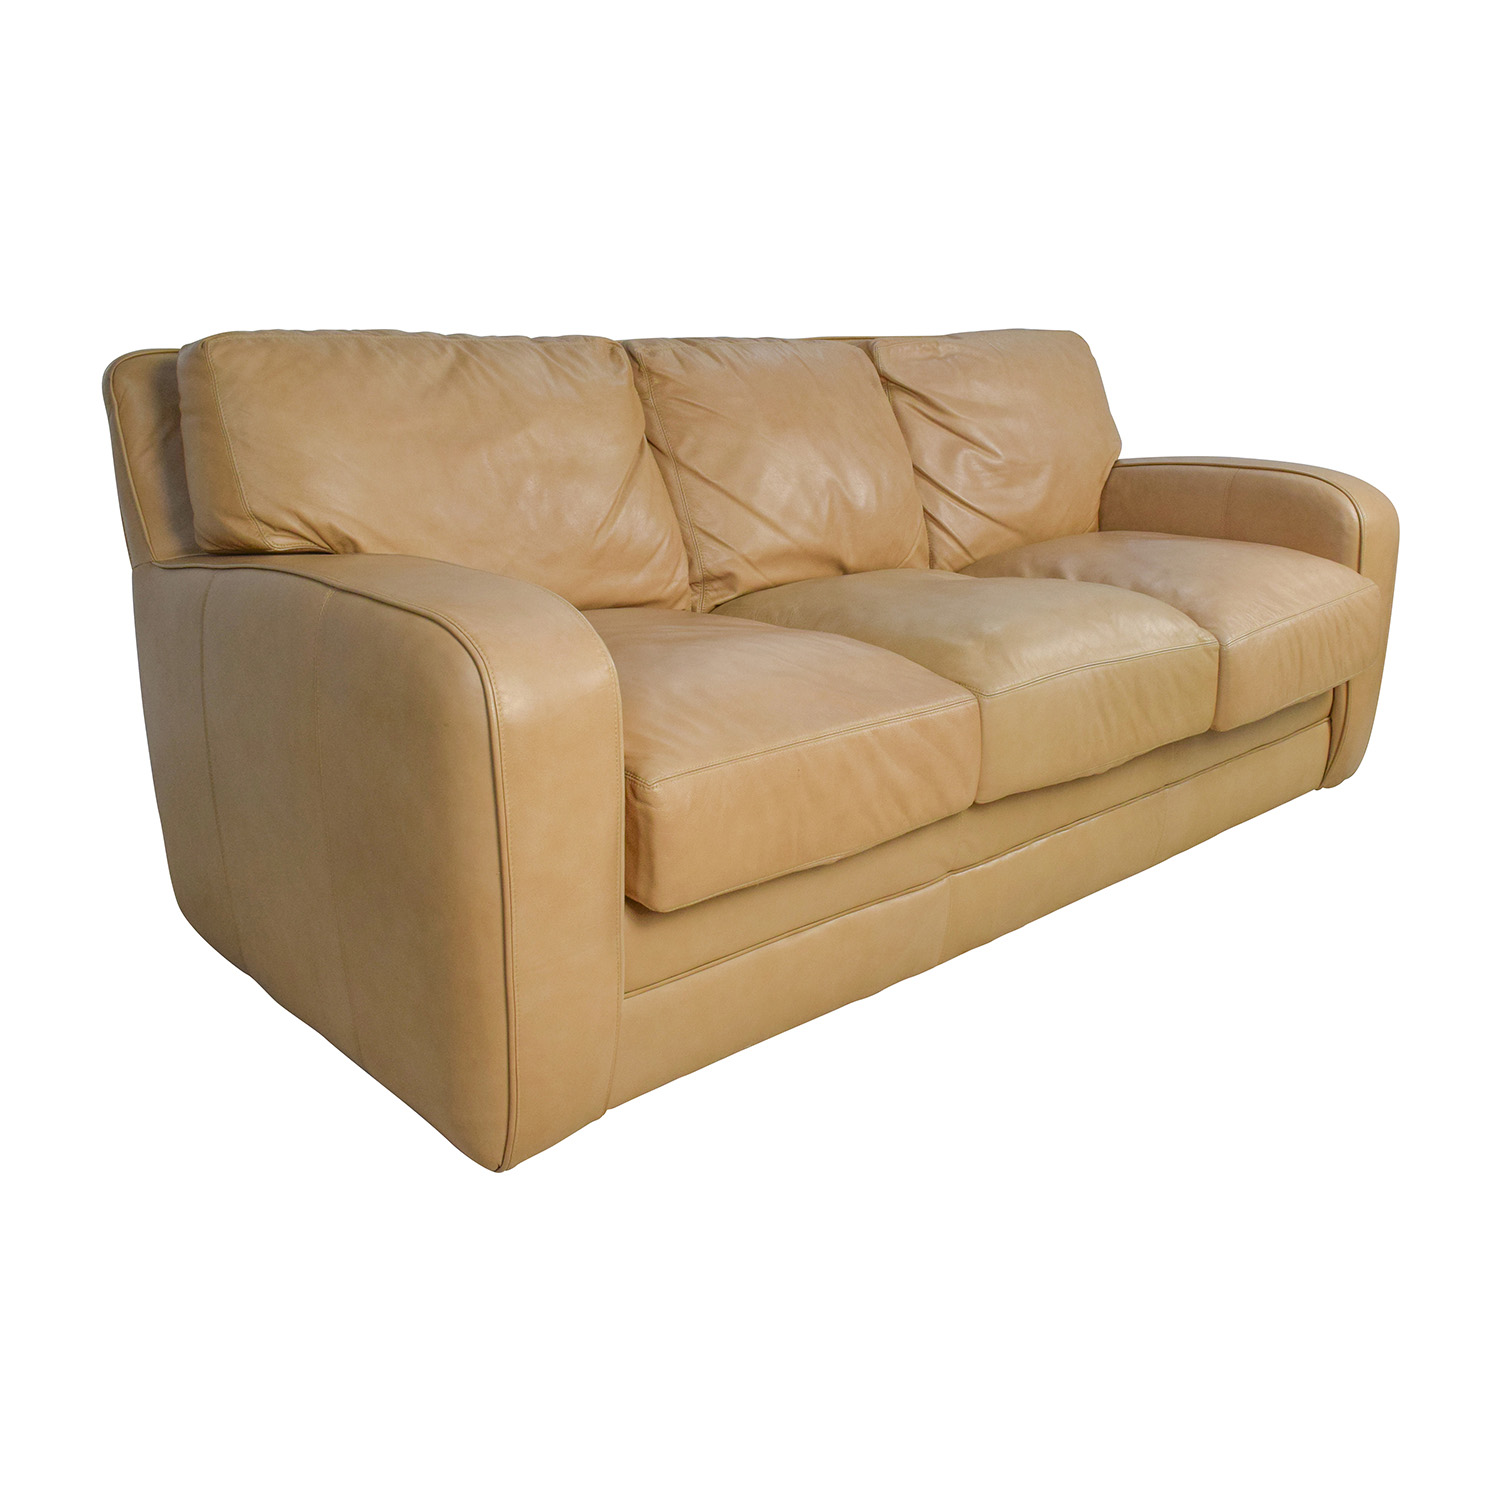 Leather Sofa Discount: Beige Three Seat Leather Sofa / Sofas